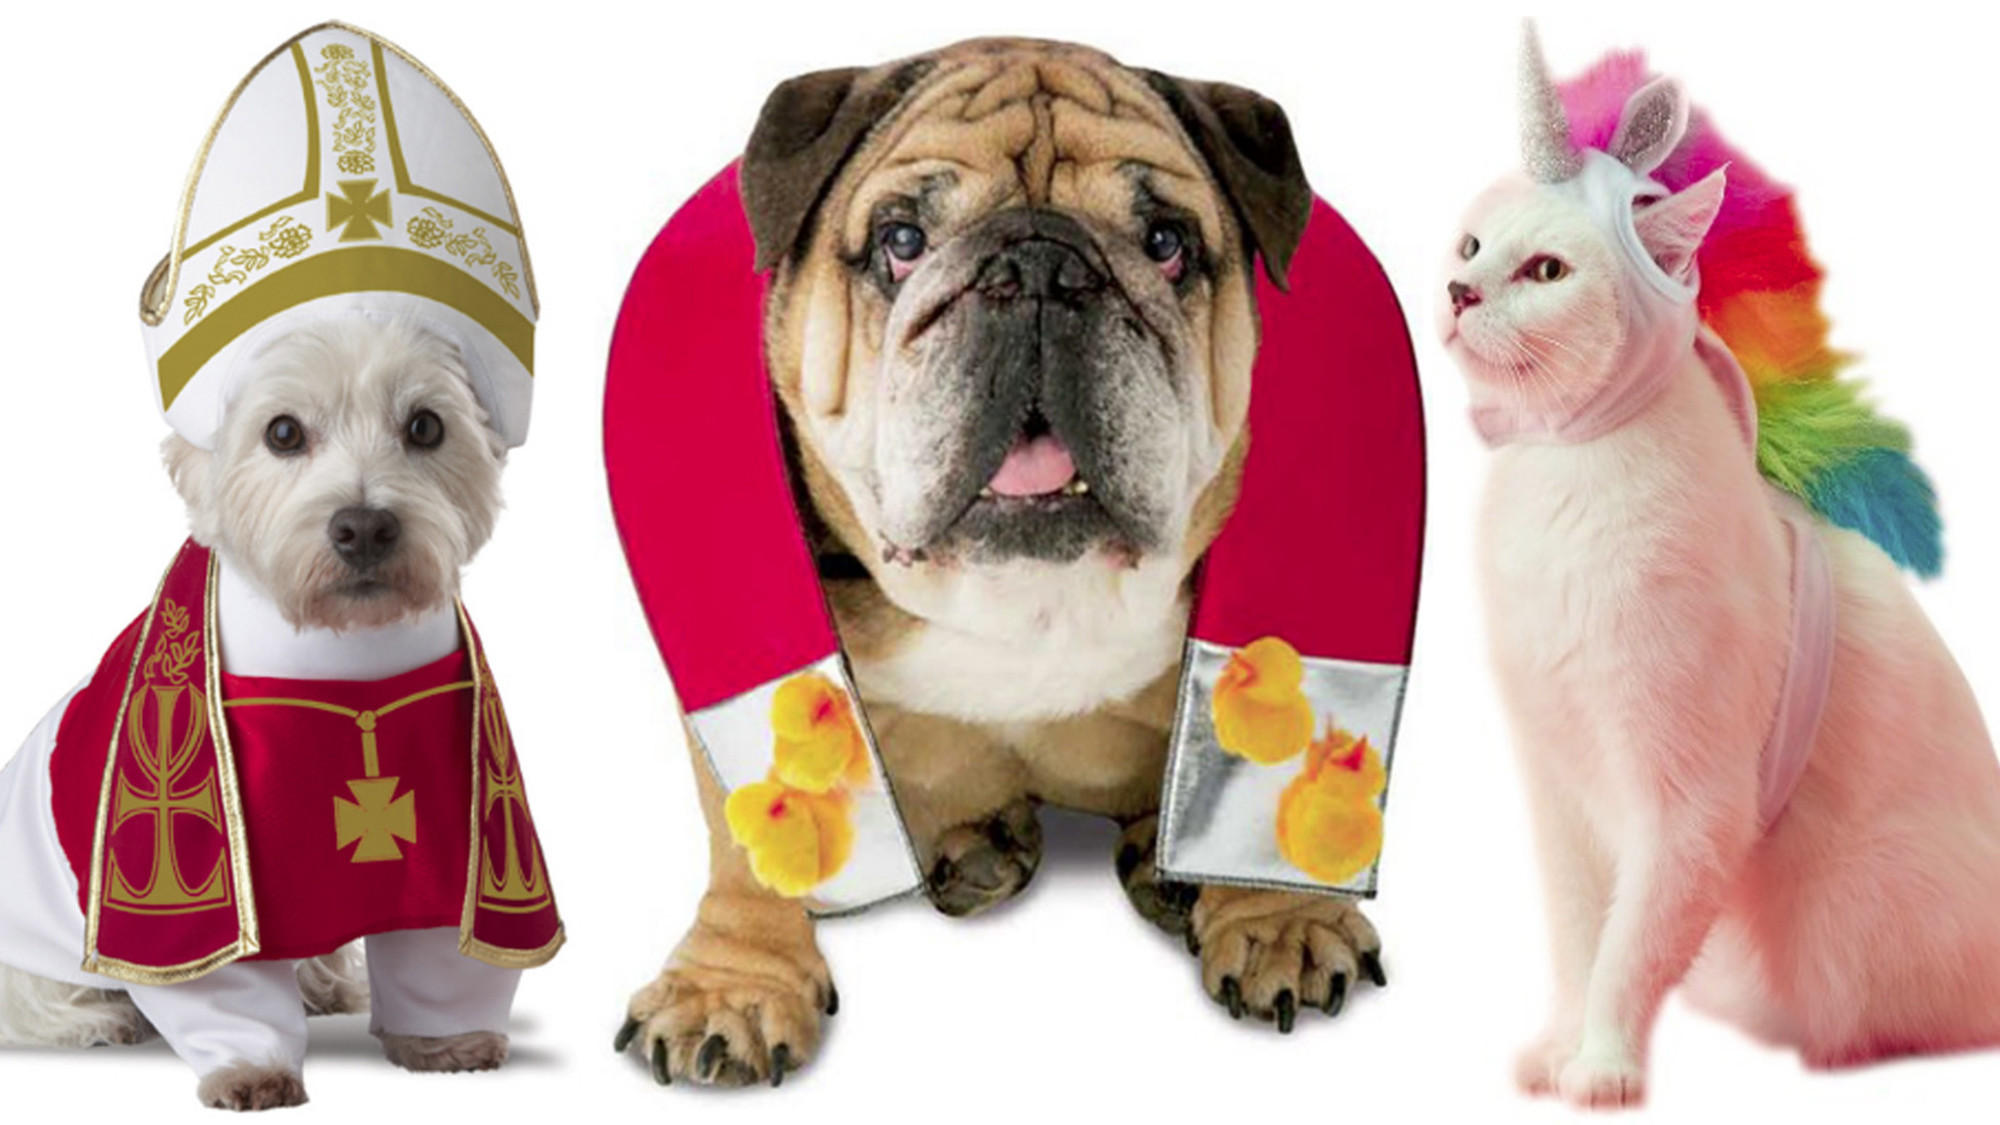 20 hilarious Halloween costumes for pets - Chicago Tribune